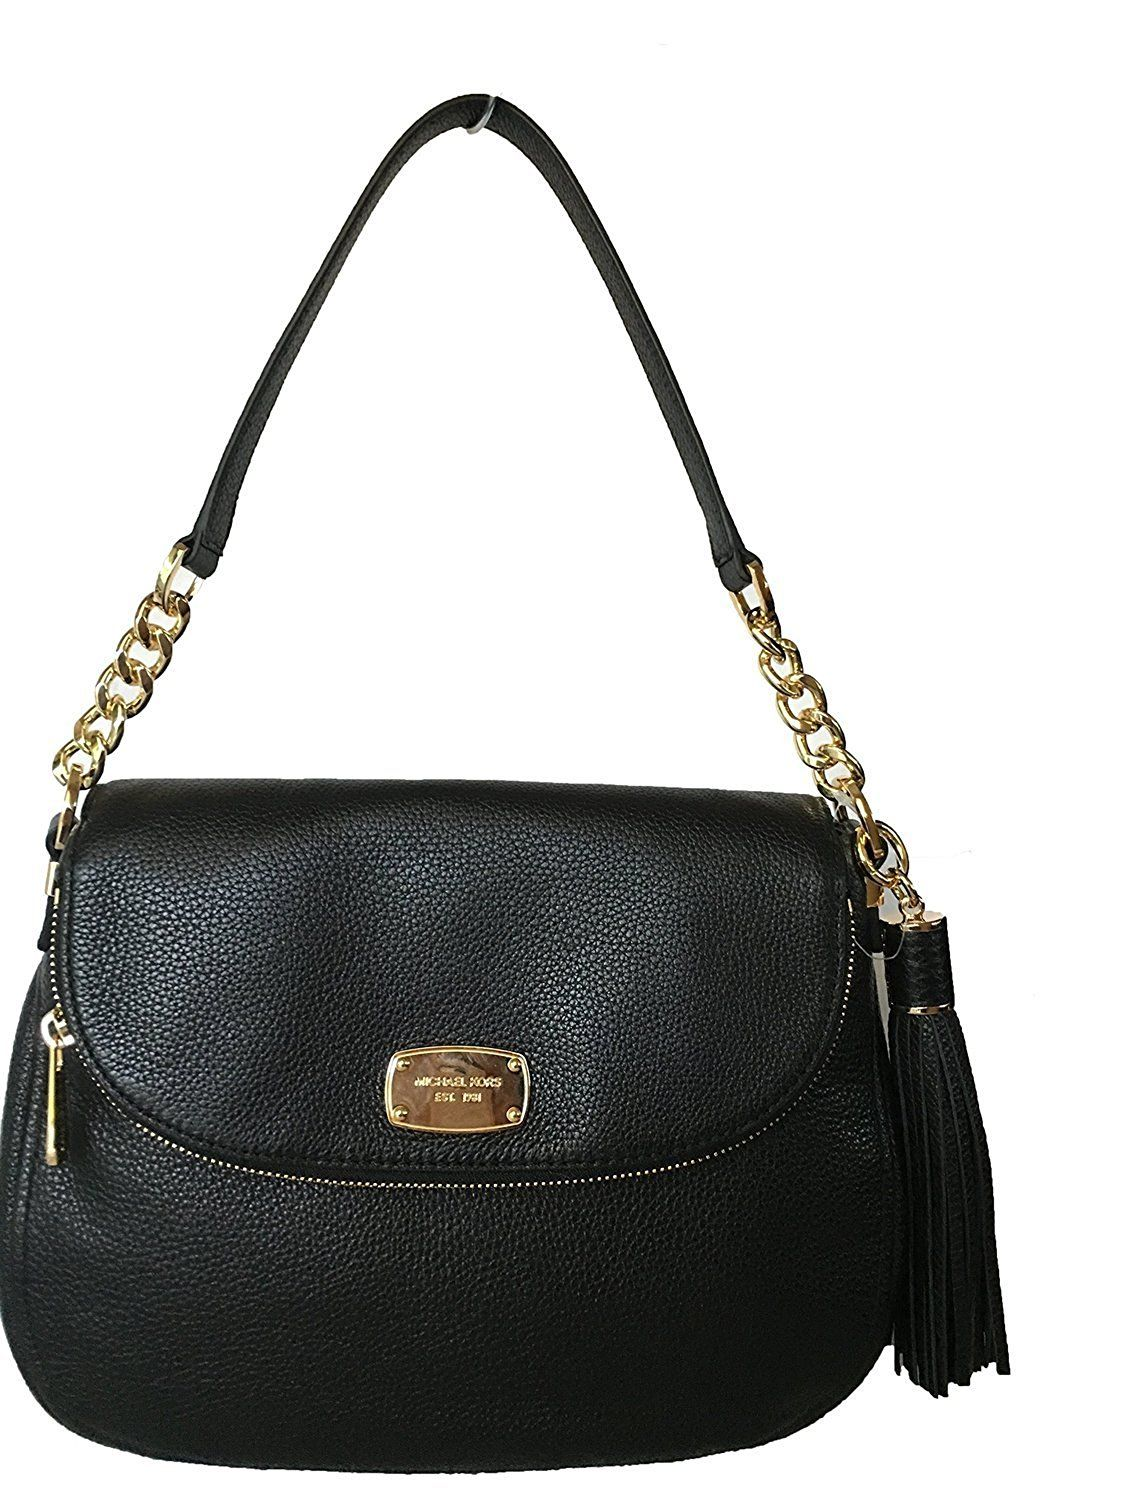 4175a5b542 Michael Kors Bedford Medium Tassel Crossbody Leather Bag - Black   Tried  it! Love it! Click the image. - amazon affiliated pin